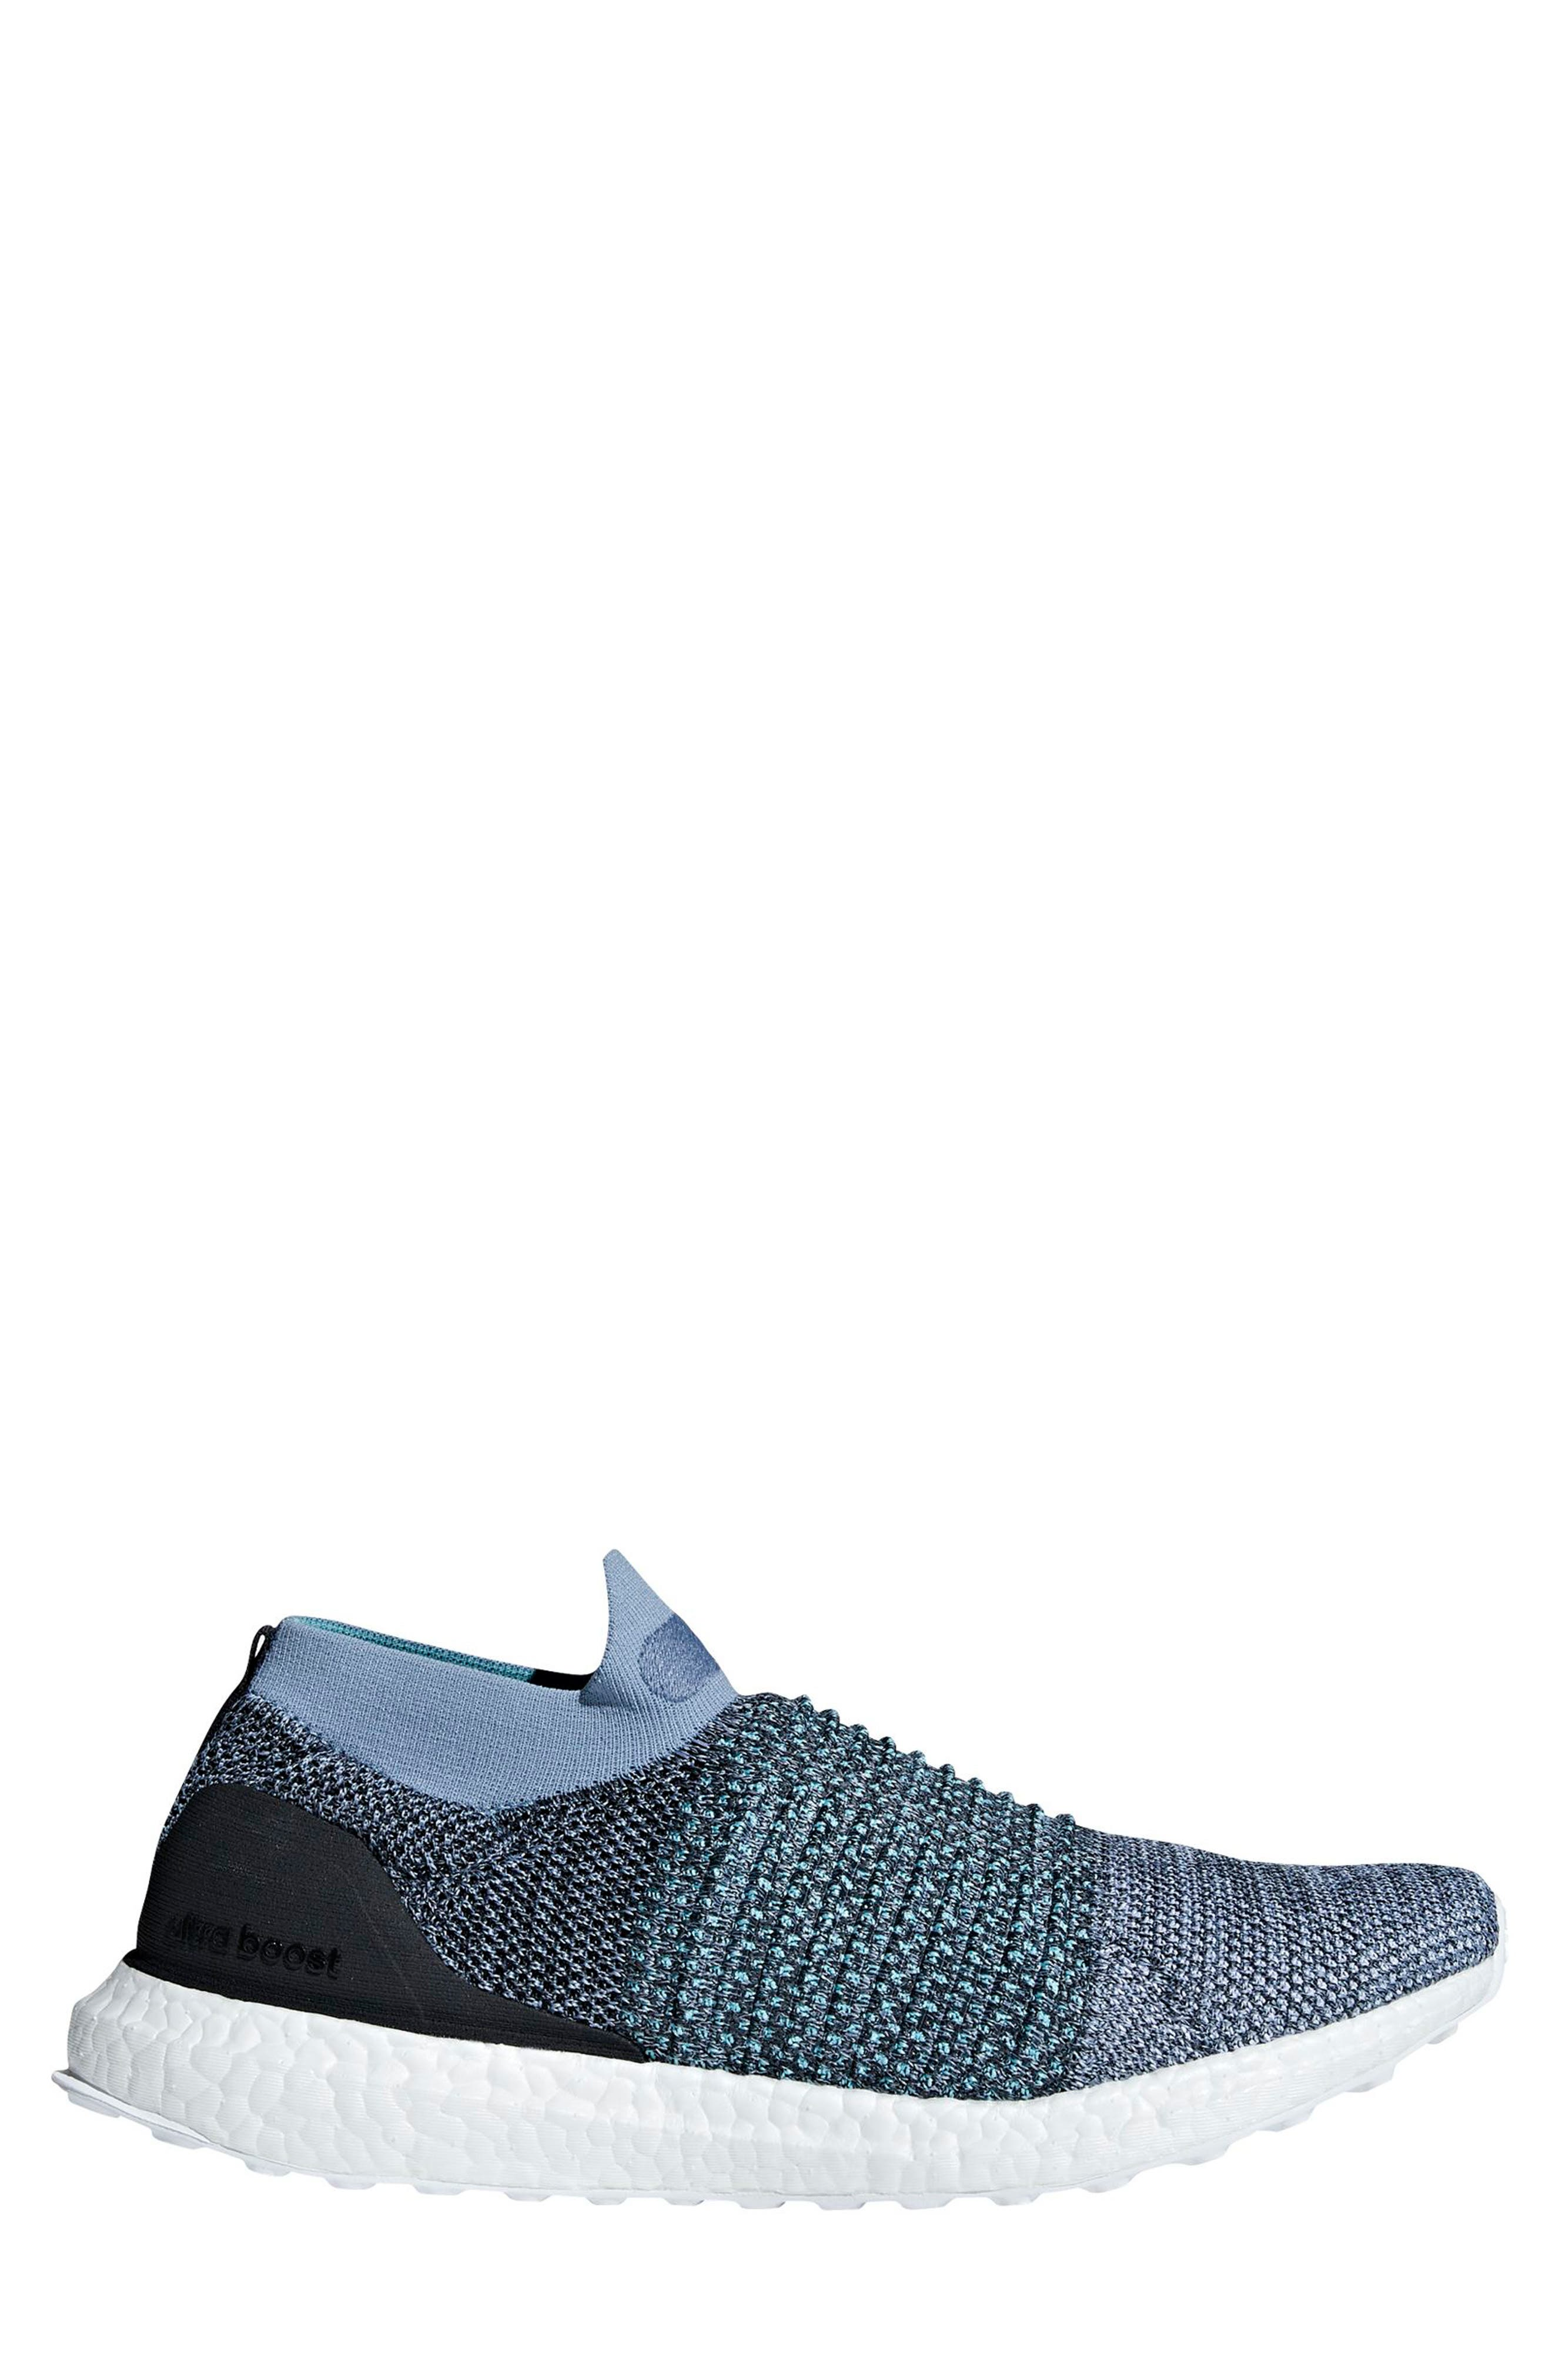 separation shoes b810e 9d70e Adidas Originals Men s Ultraboost Laceless X Parley Running Shoes, Grey Blue